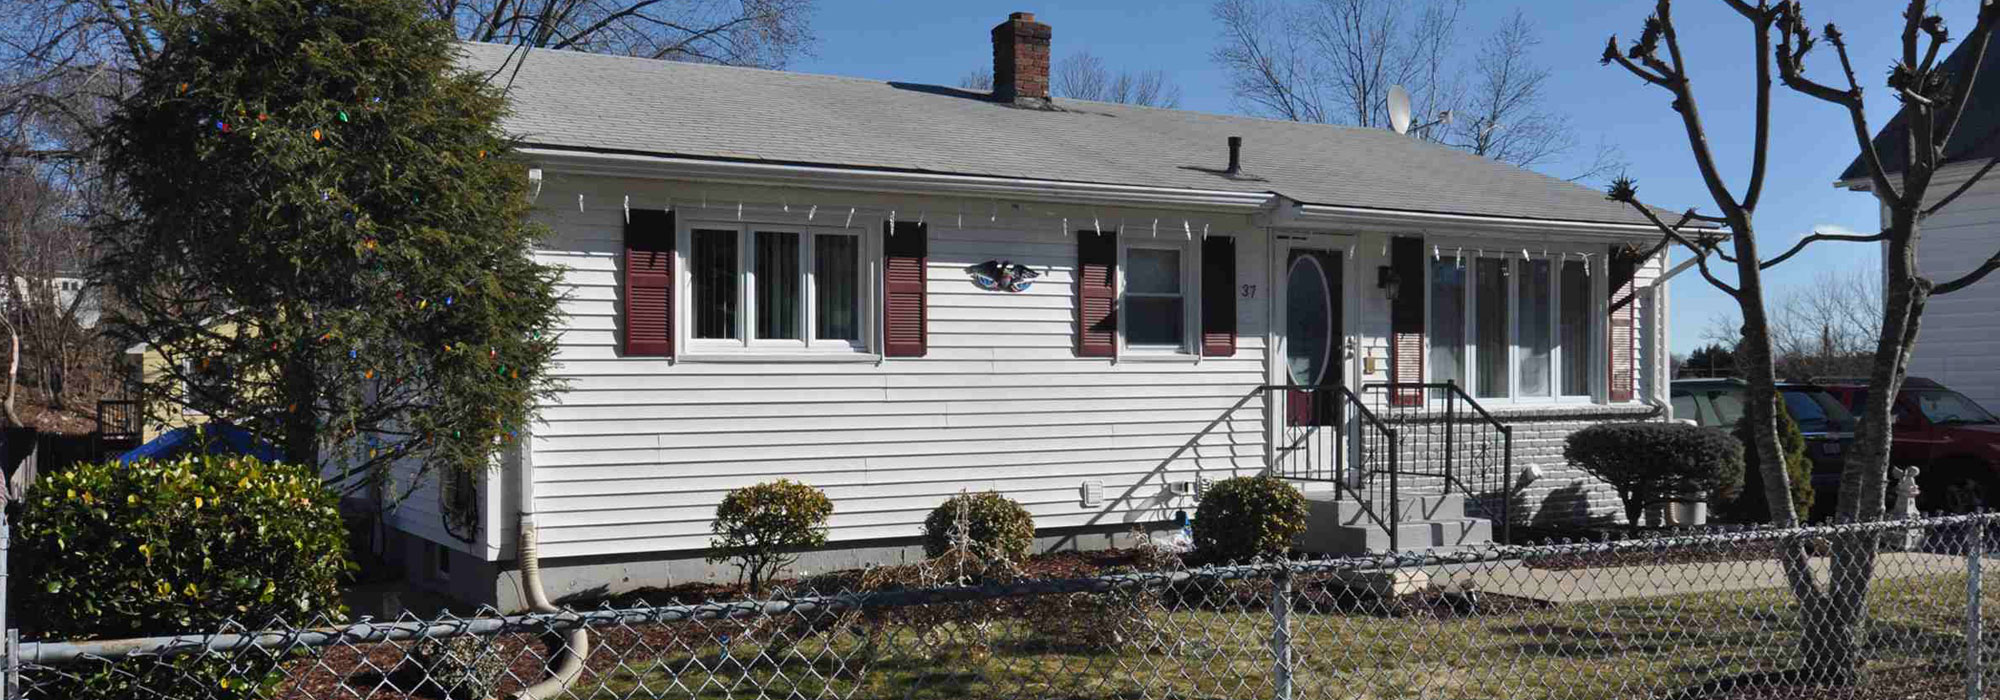 37 Summit Avenue , West Warwick, RI 02893